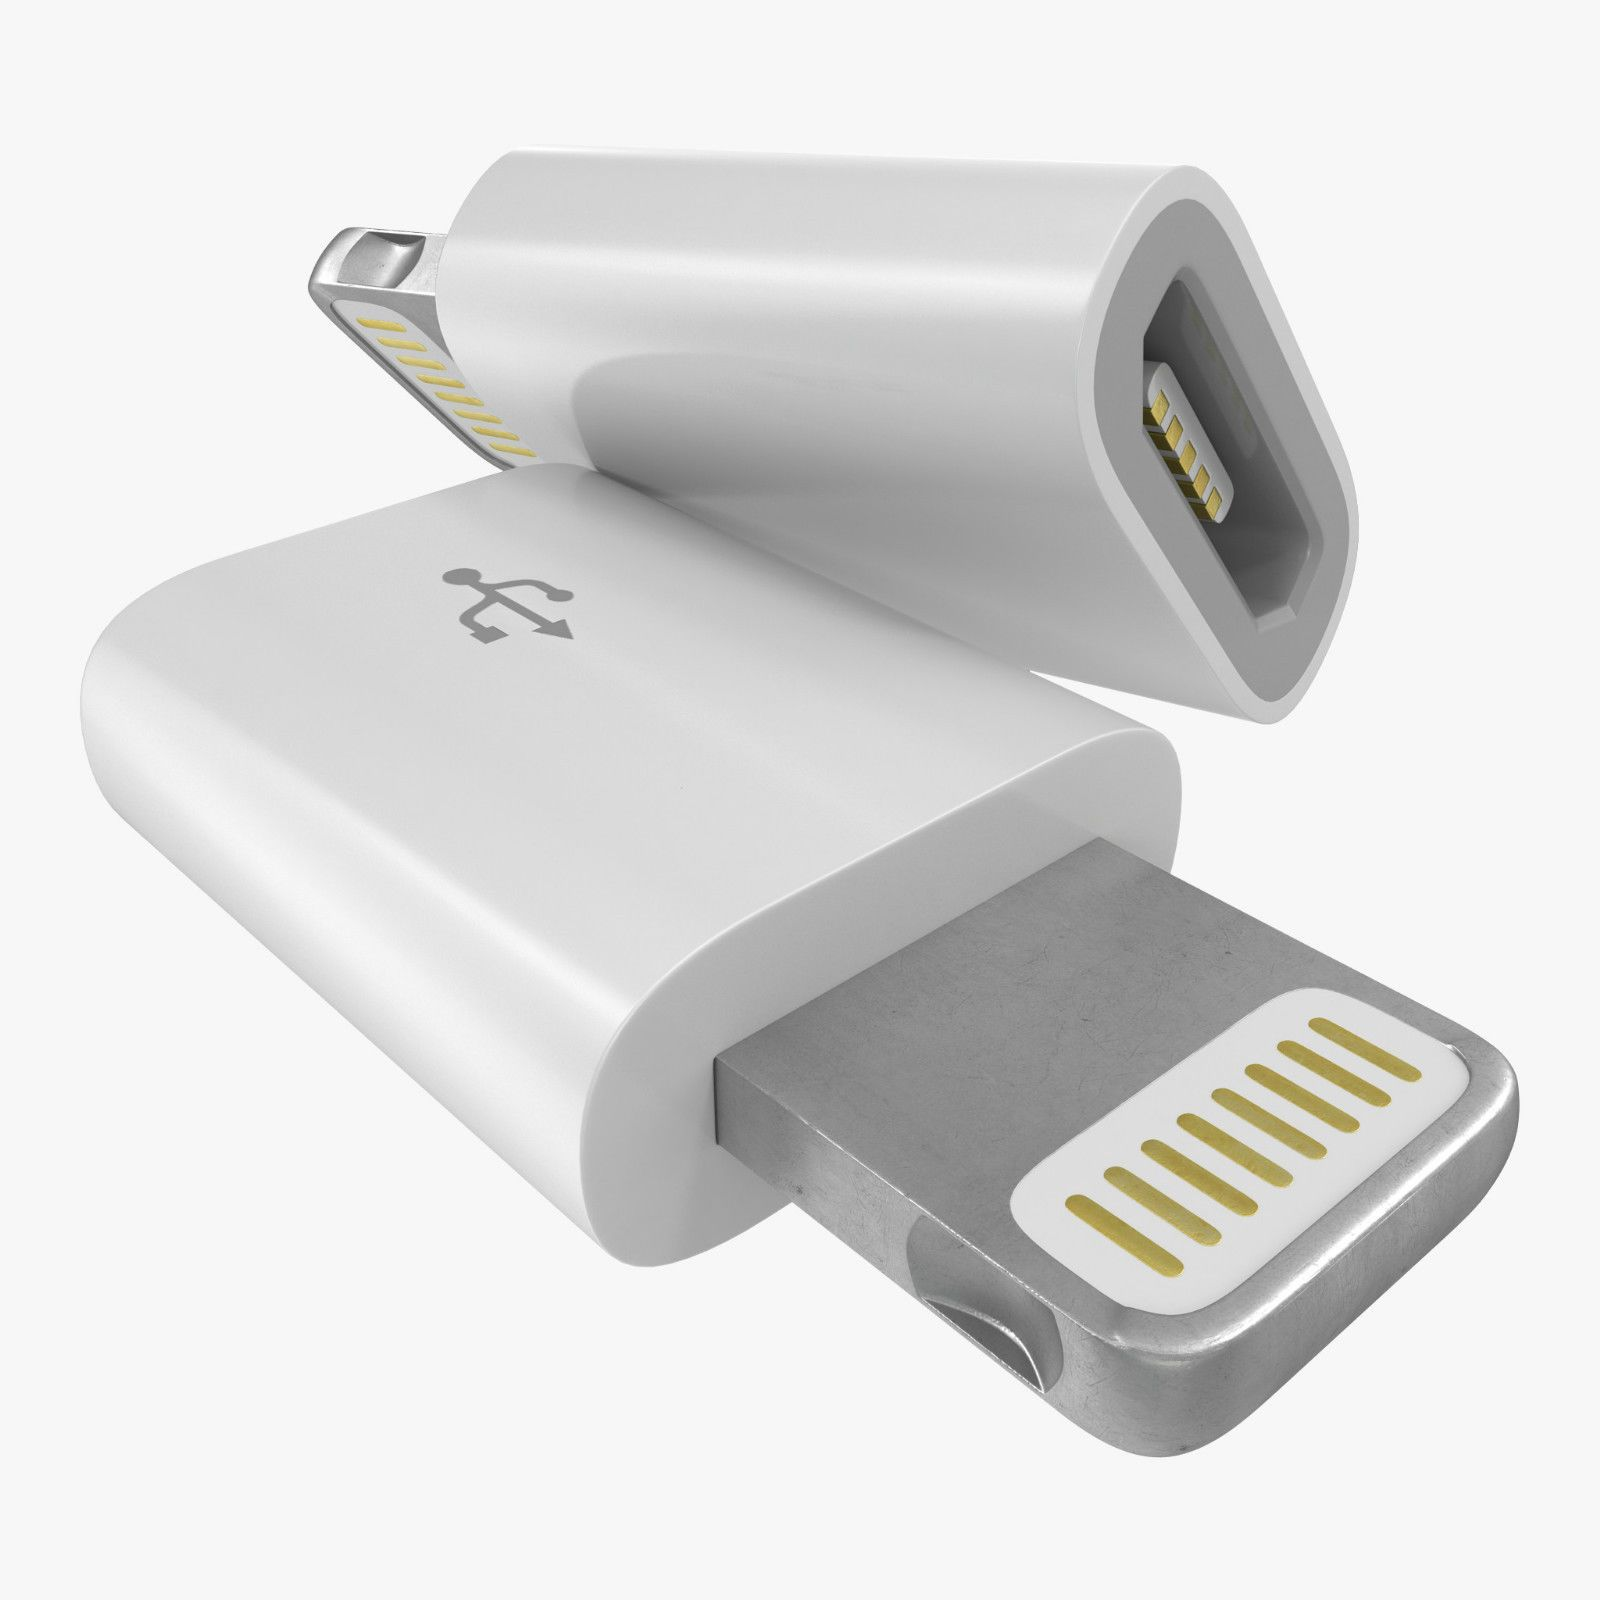 Apple Lightning To Micro Usb Adapter Md820zm A Adapter Kit Apple Dell 45w Ac Adapter Uk Power Adapter Xiaomi Mdy 08 Eo: Genuine Official Apple MD820 Micro USB To Lightning